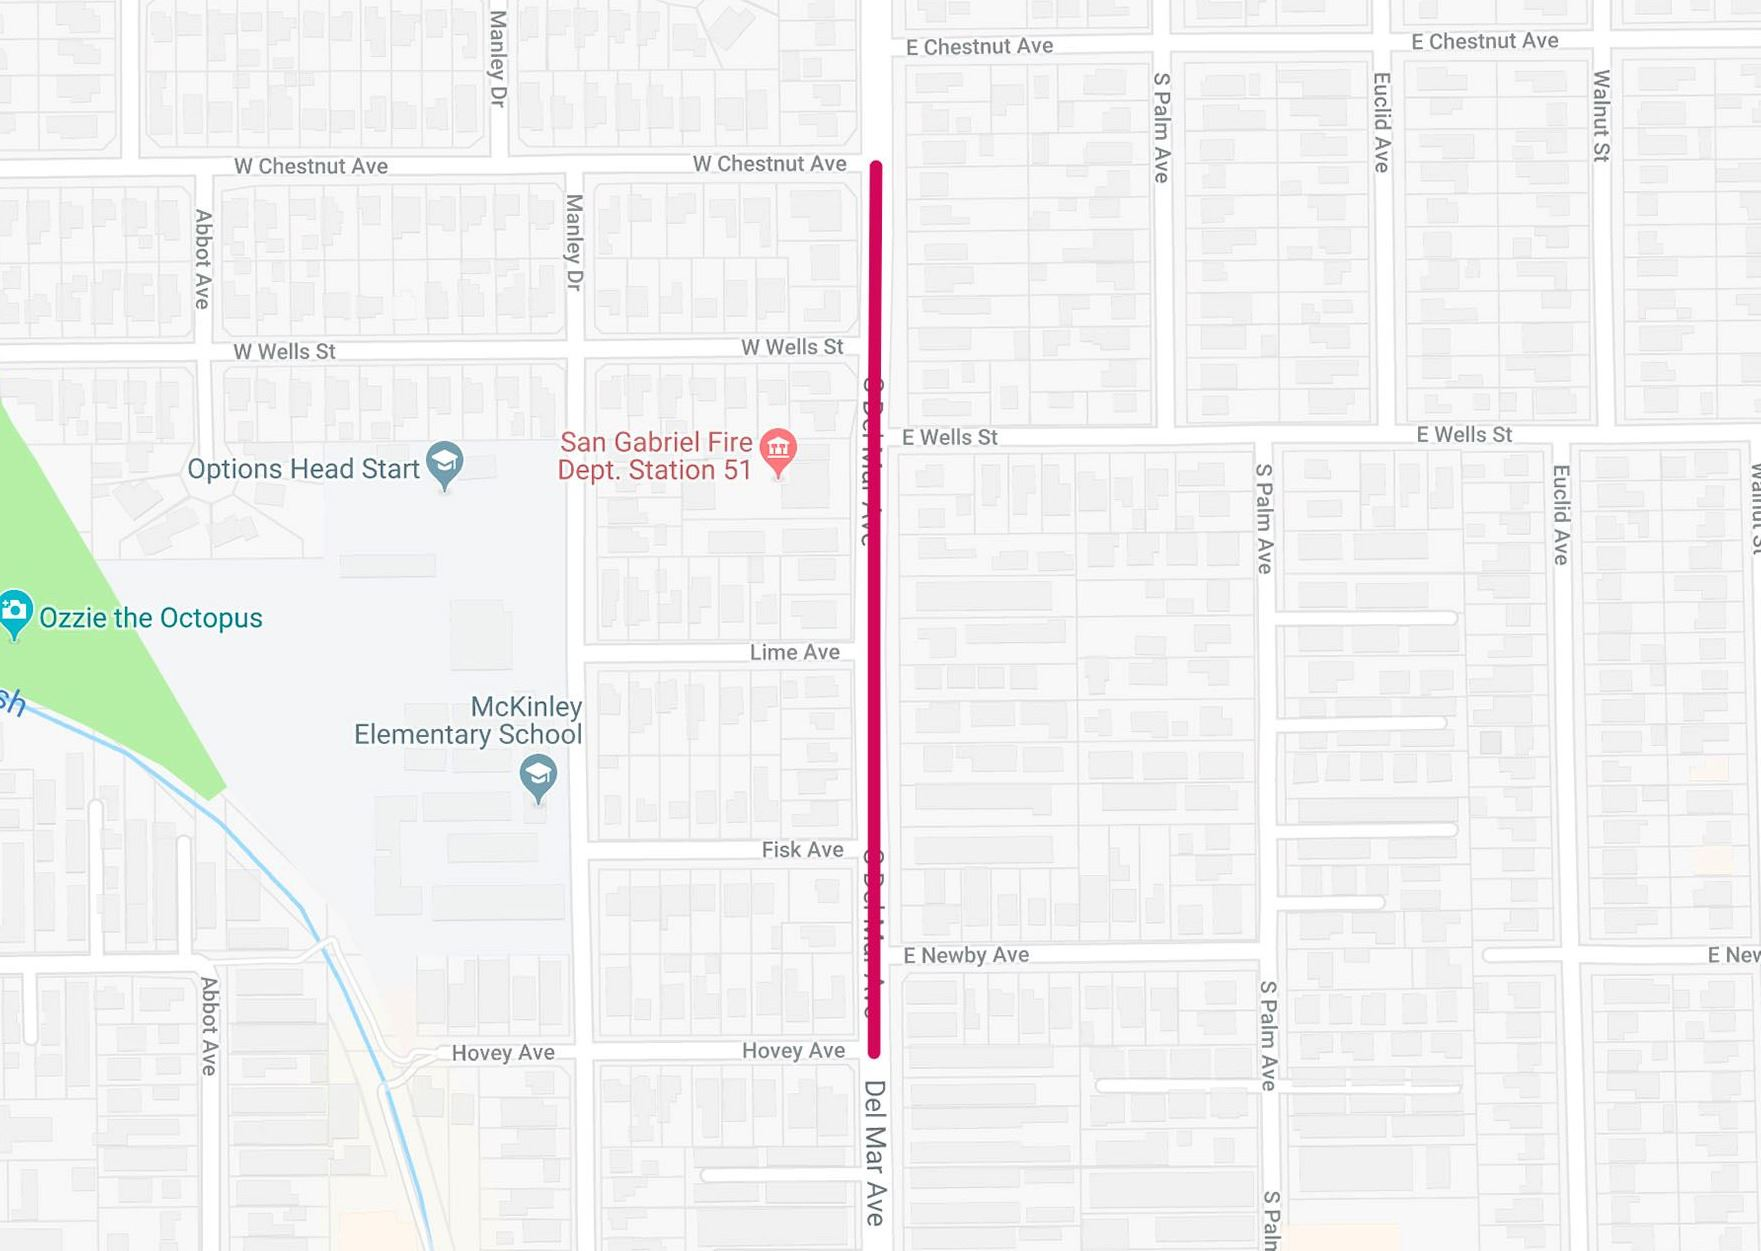 Road work on Del Mar Avenue from Hovey Avenue to Chestnut Avenue to begin March 11